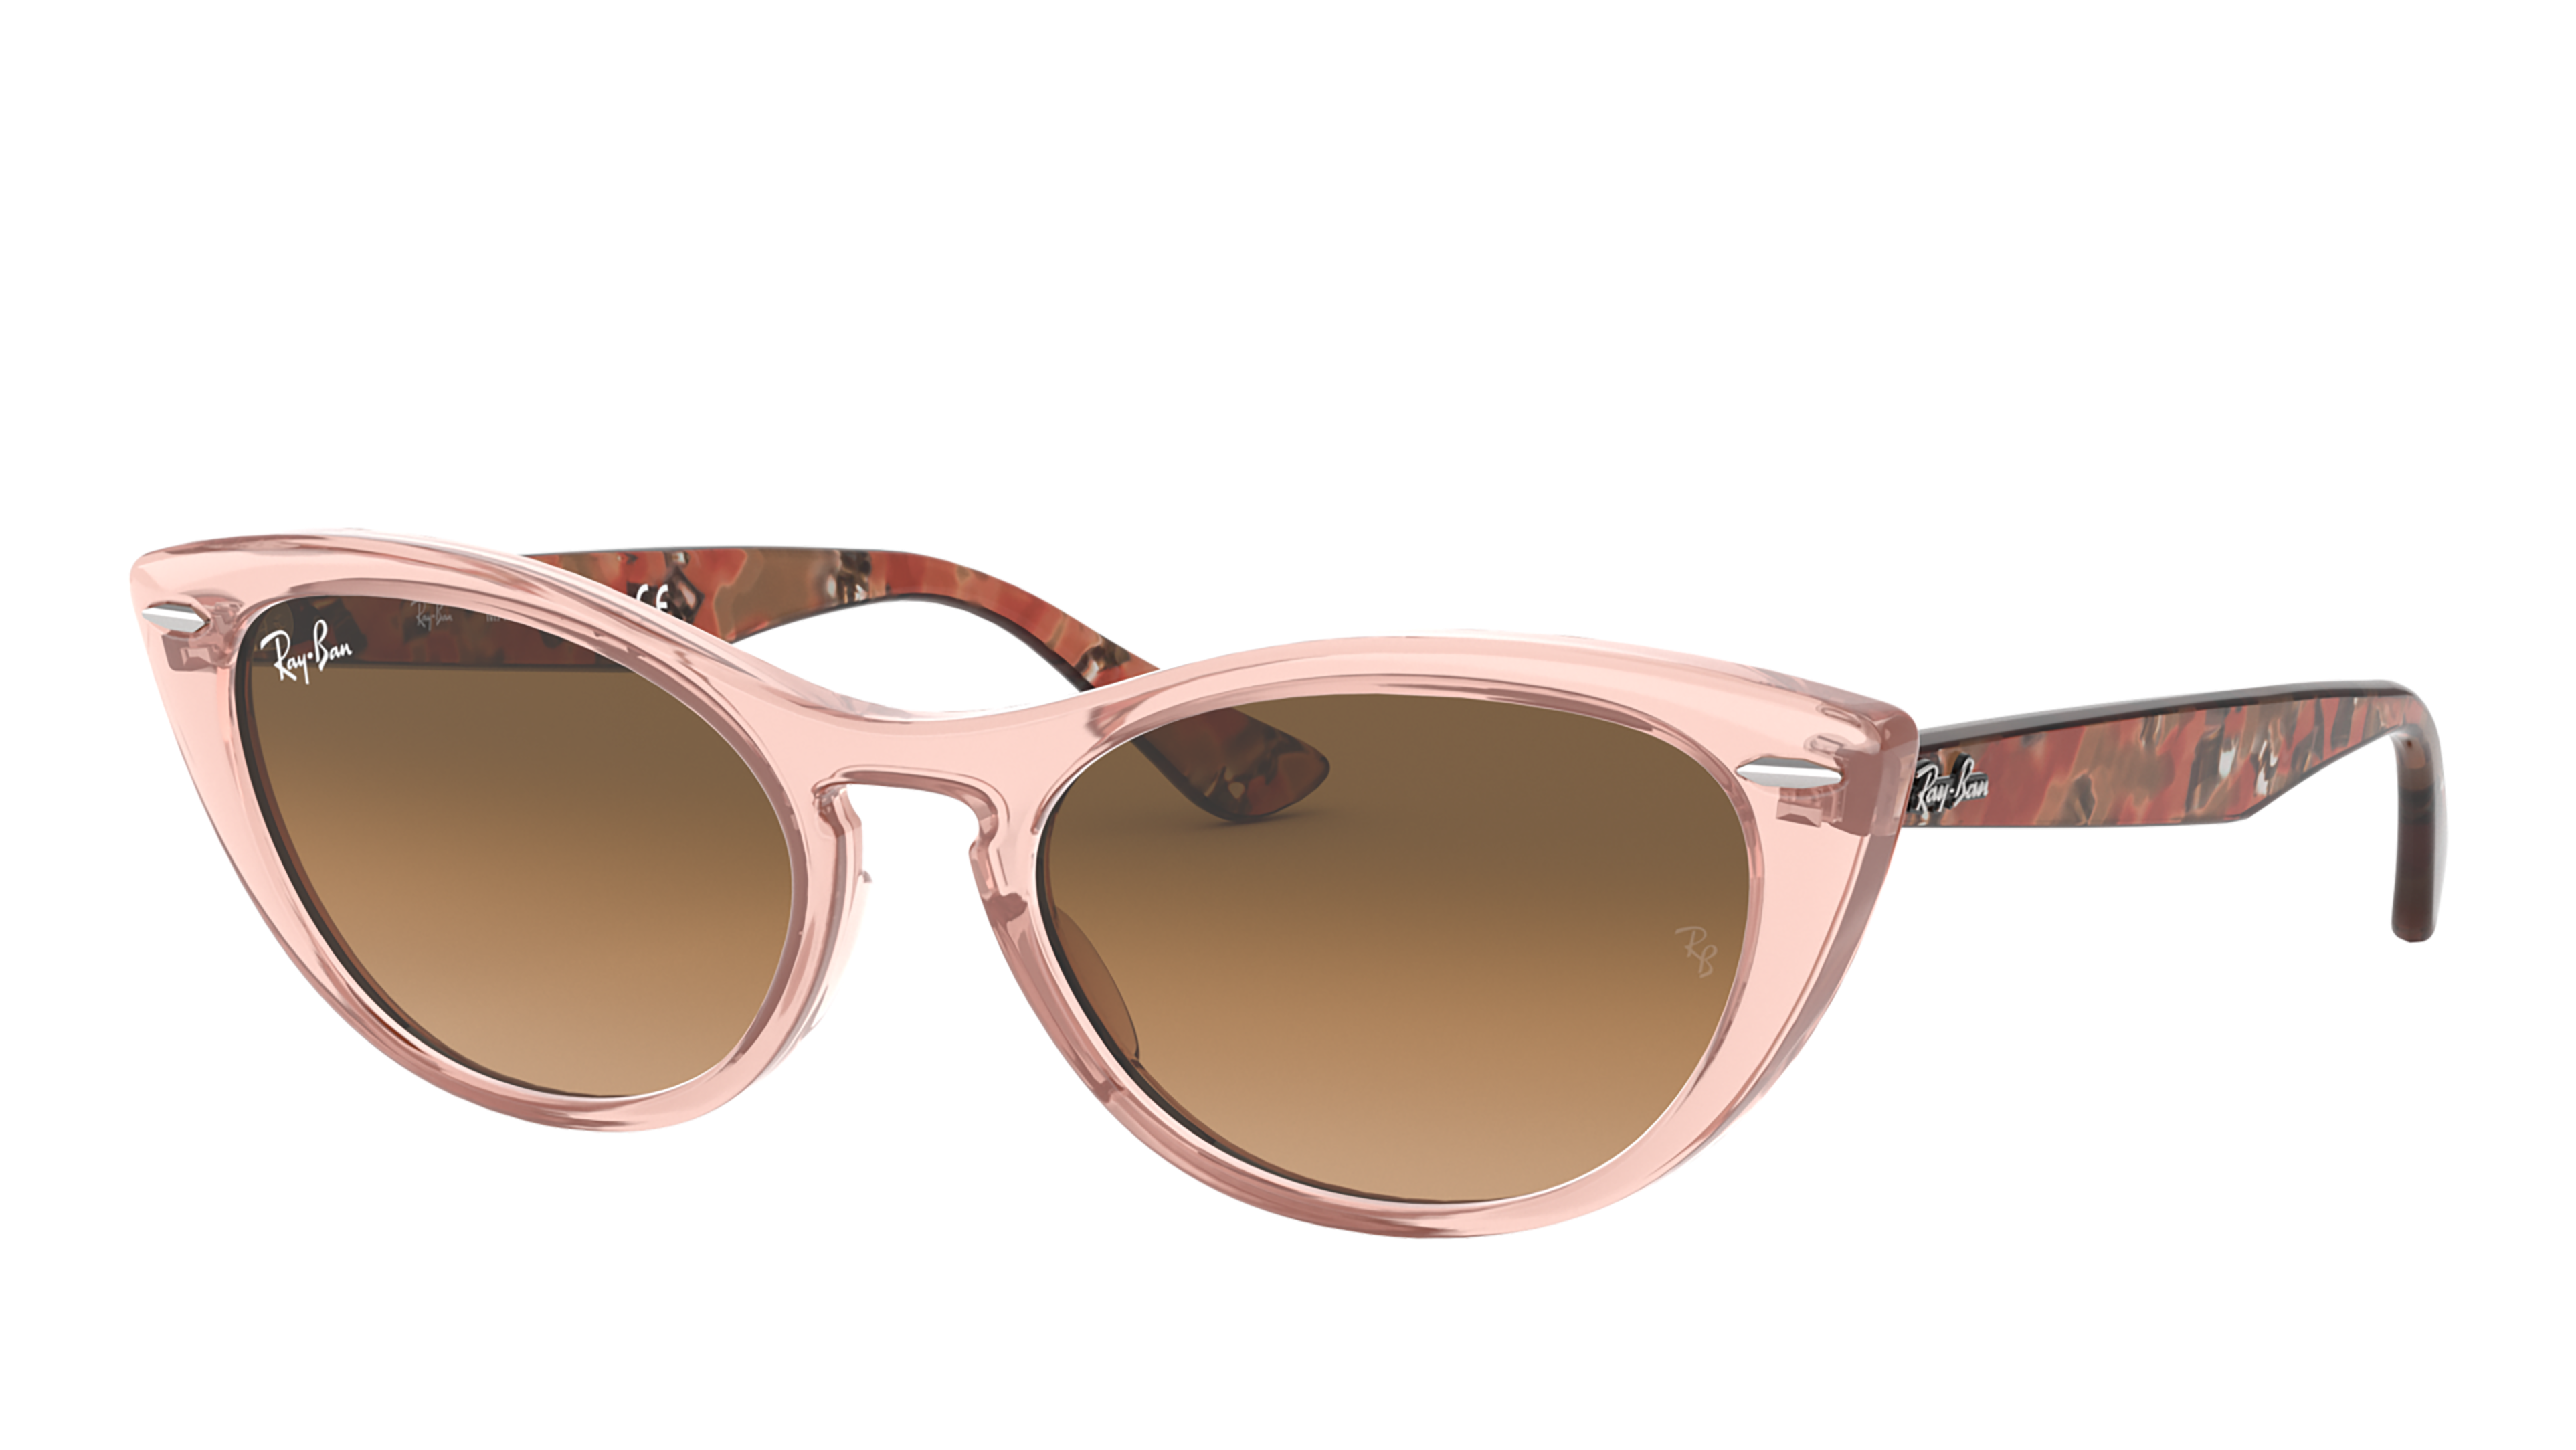 Angle_Left02 Ray-Ban Ray-Ban 0RB4314N 128151 54/18 Roze, Transparant/Bruin